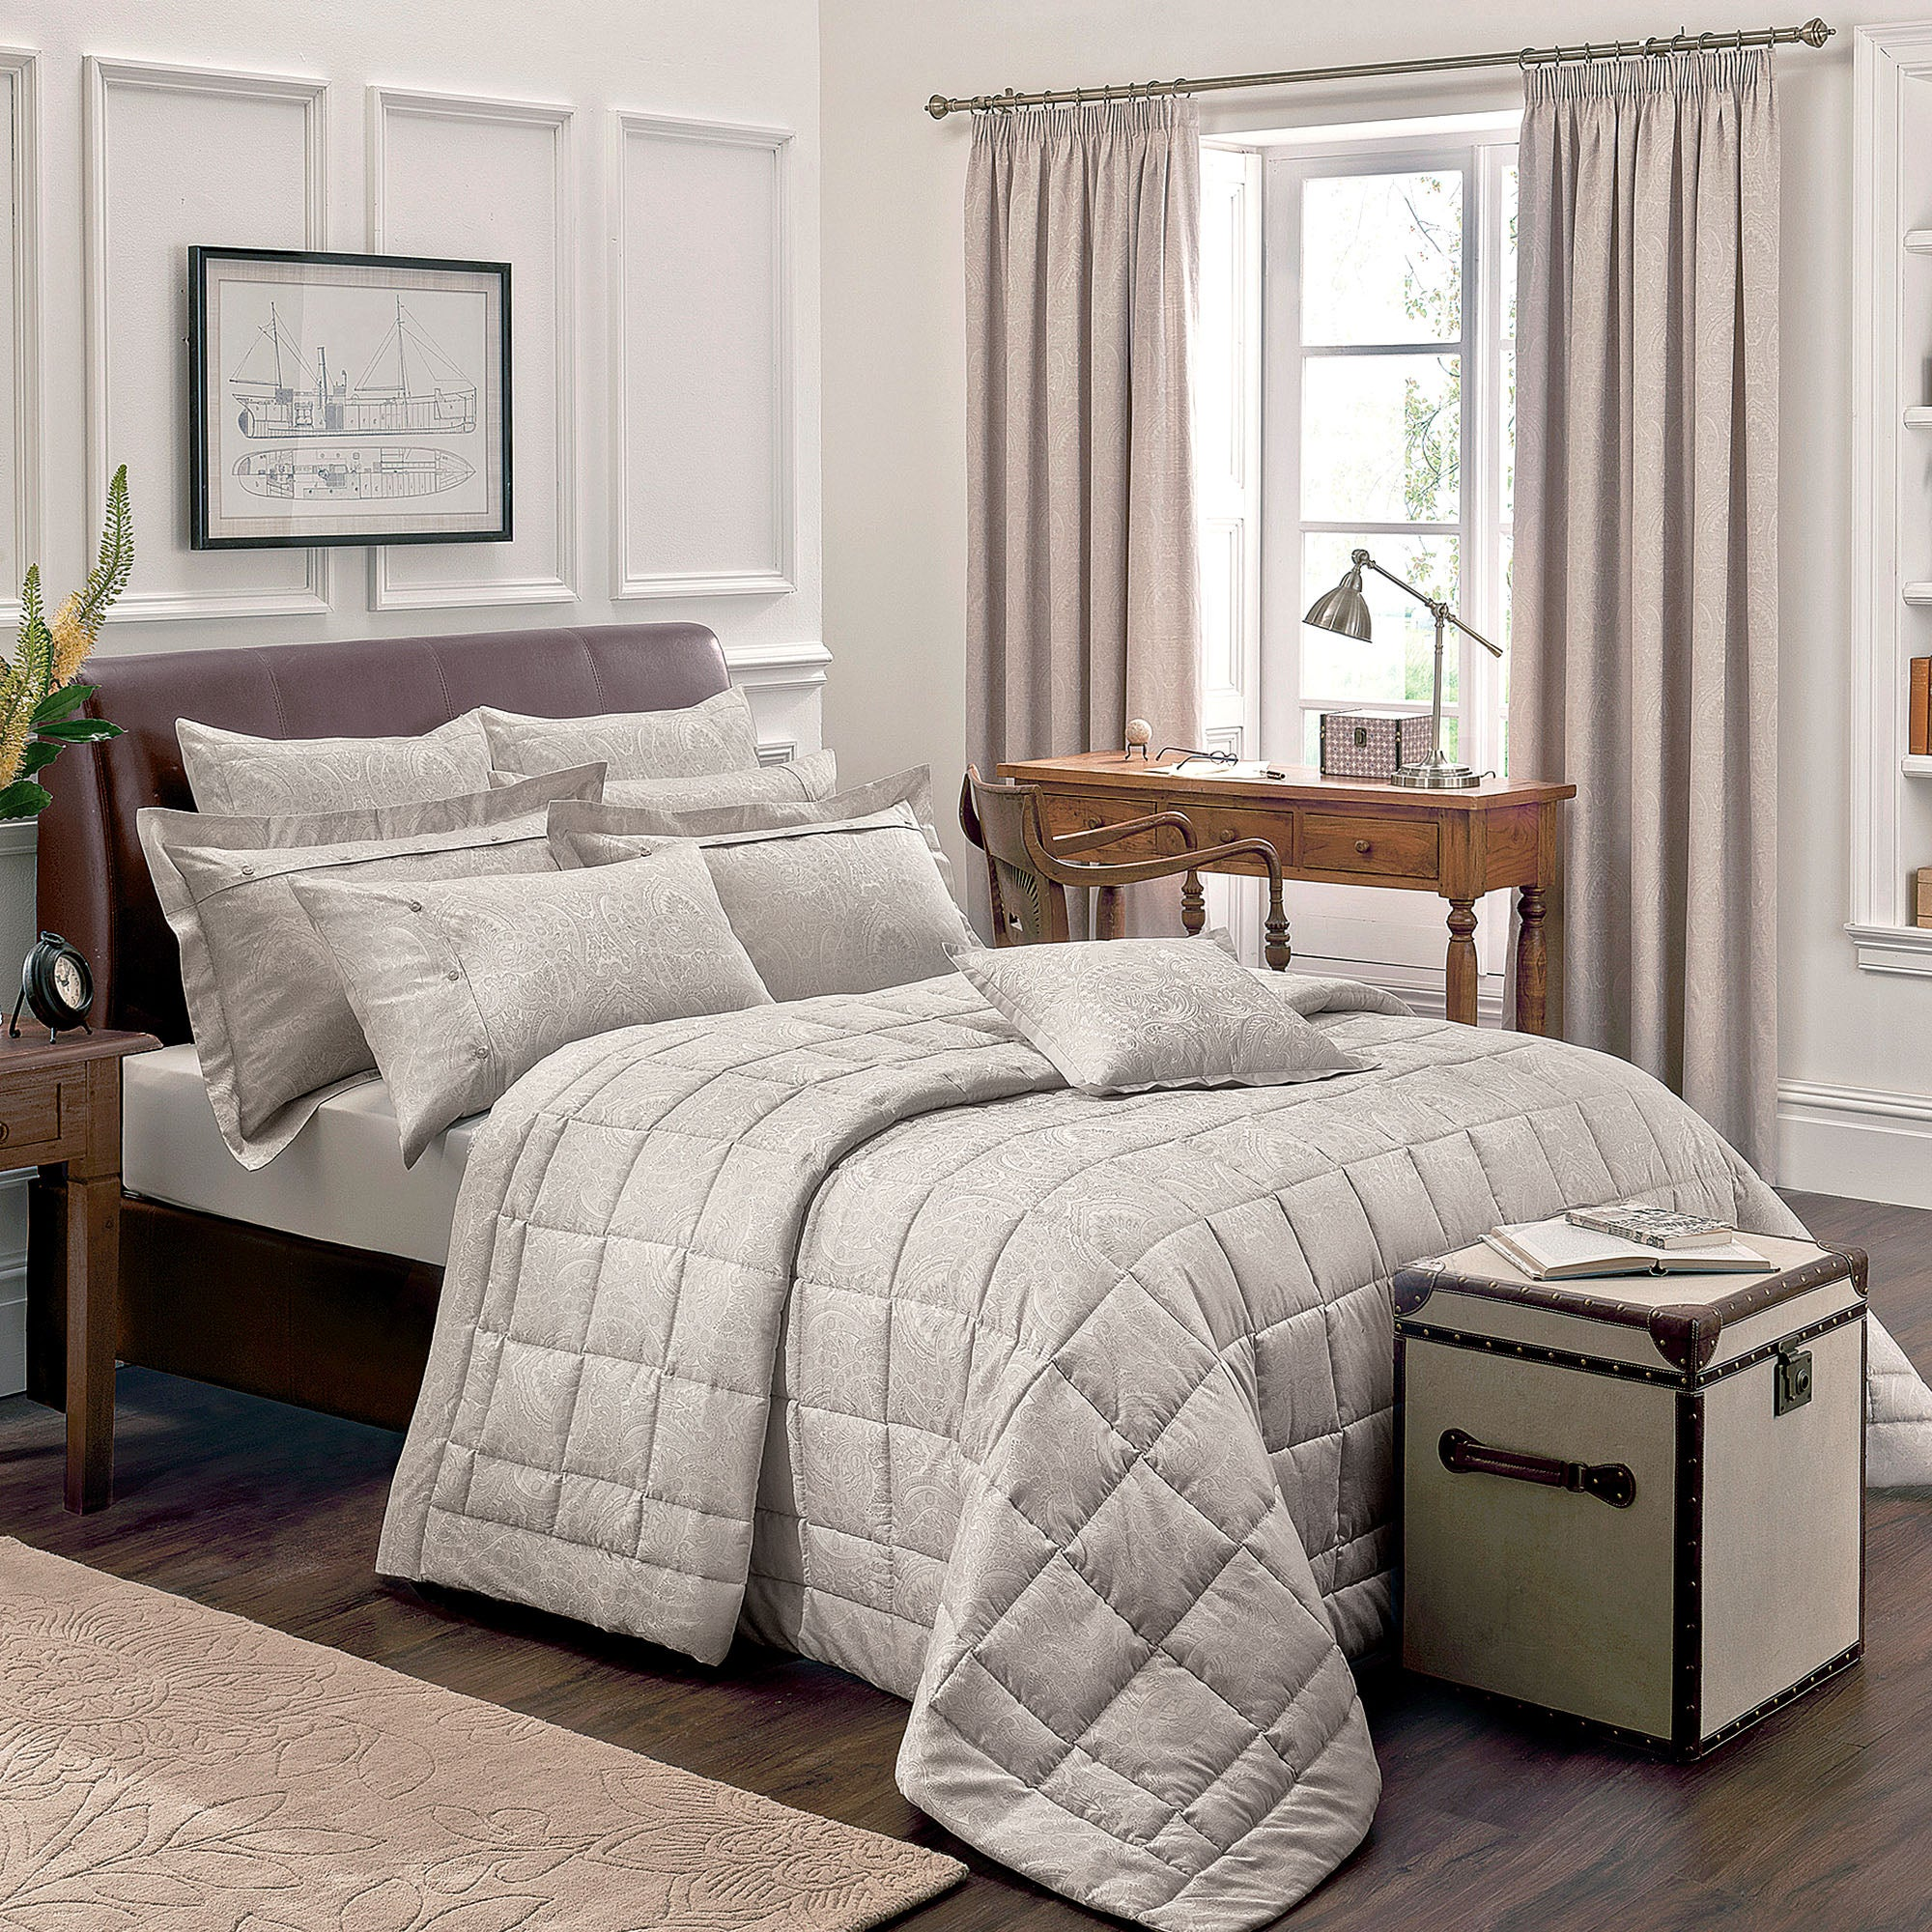 Dorma Paisley Natural Bed Linen Collection